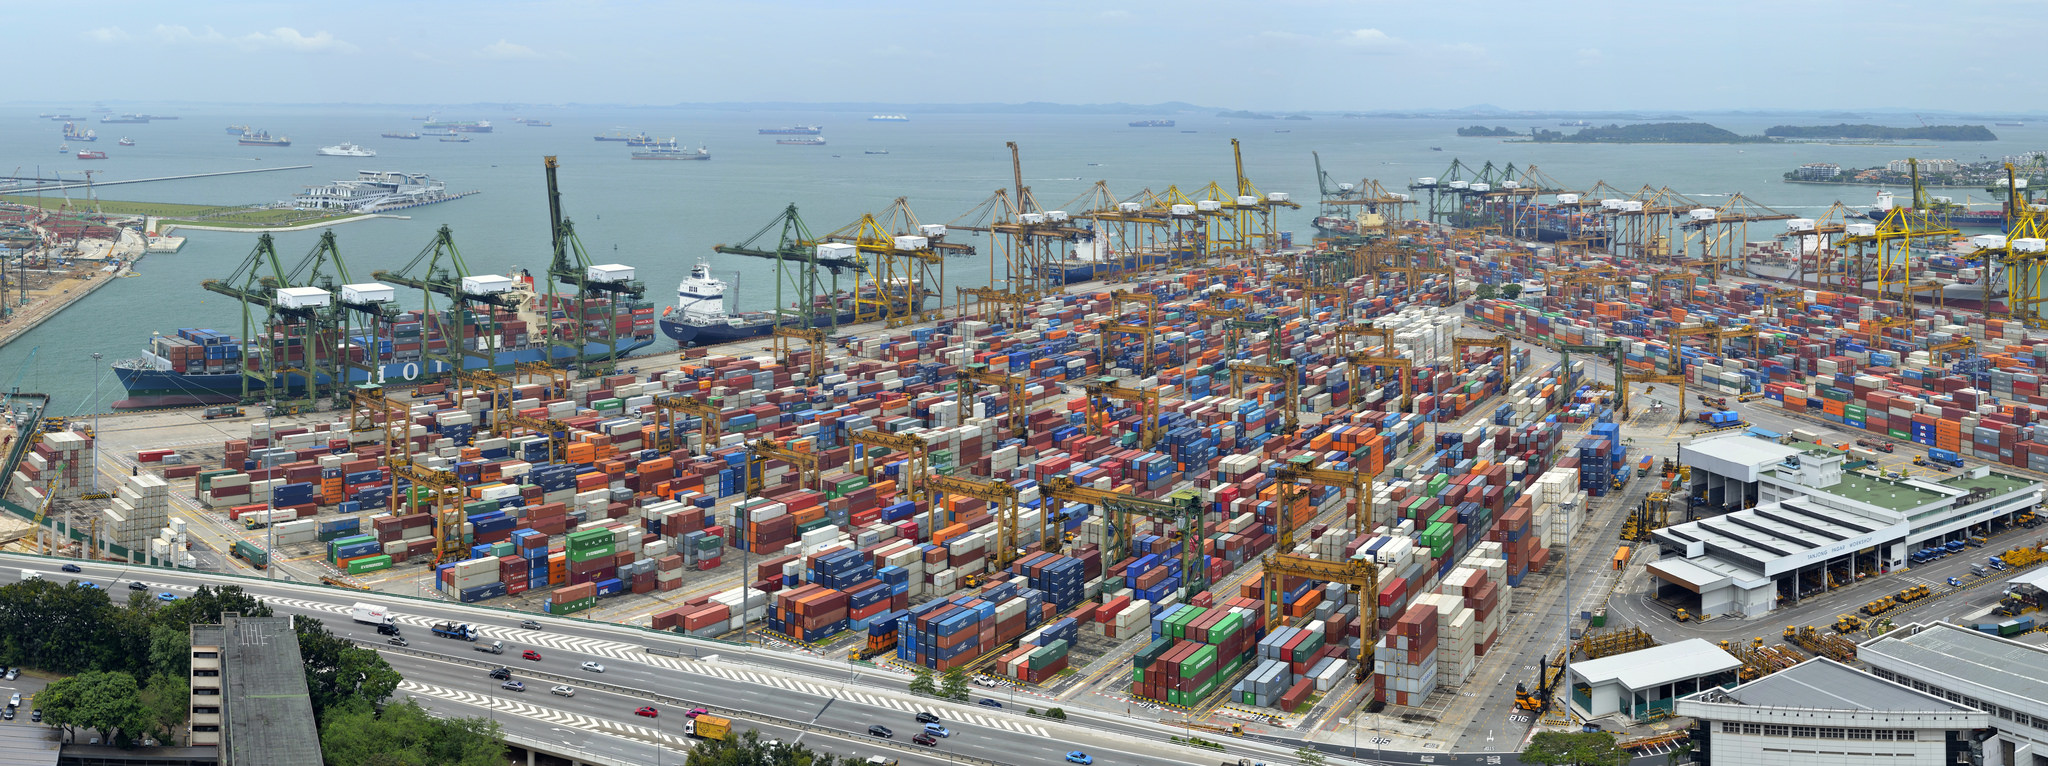 Singapore has topped the list of foreign investment generators, accounting for 29 per cent of the record USD 81.72 billion foreign direct investment India received during the financial year 2020-21.